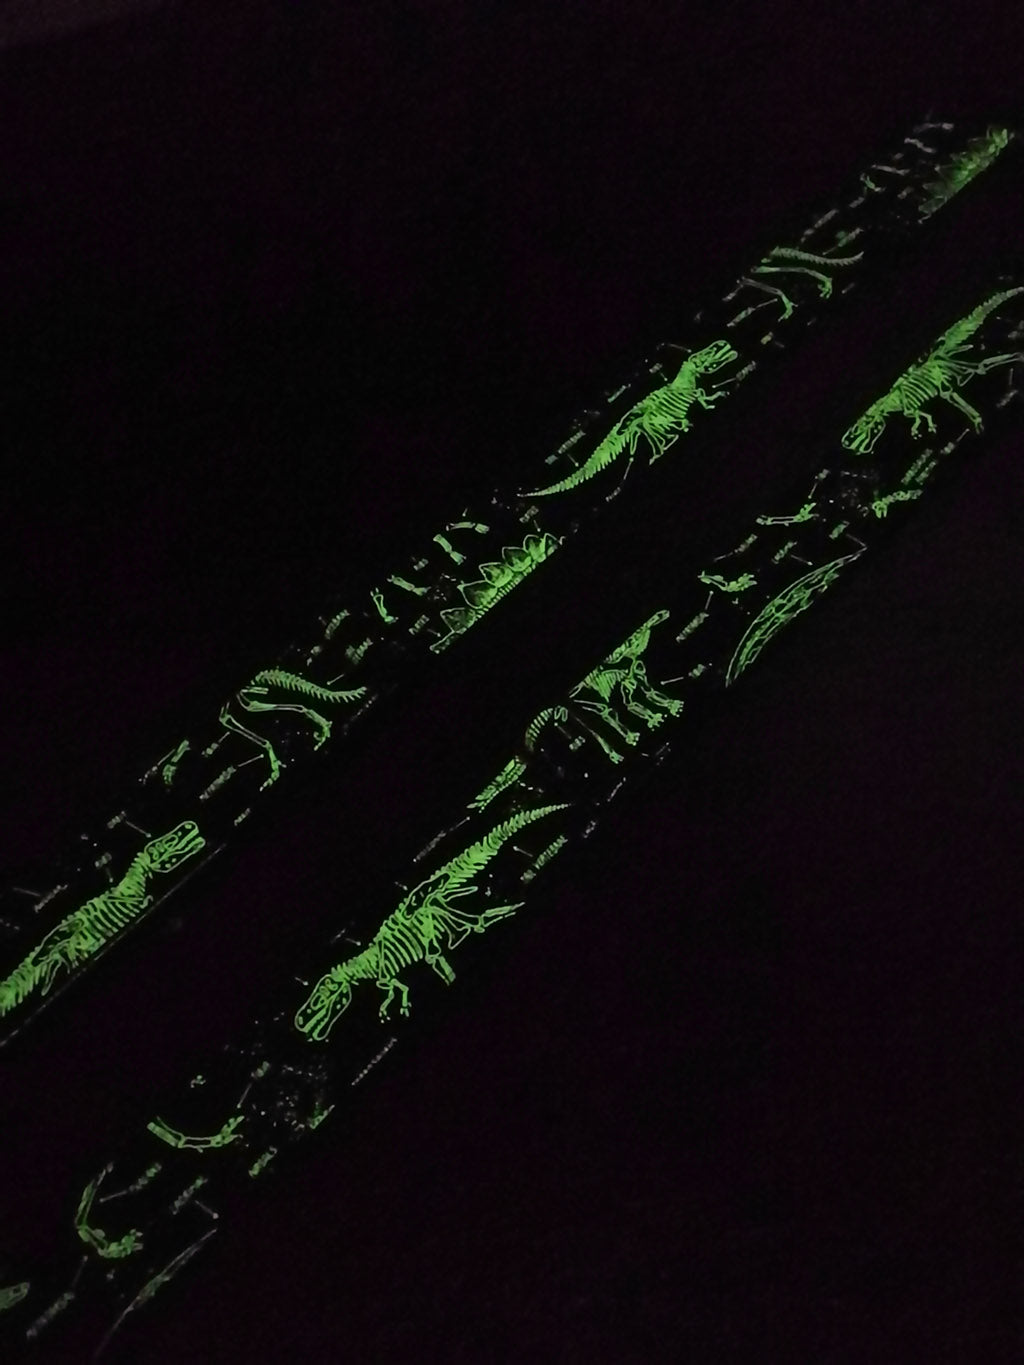 dinosaur grow in the dark ukulele strap